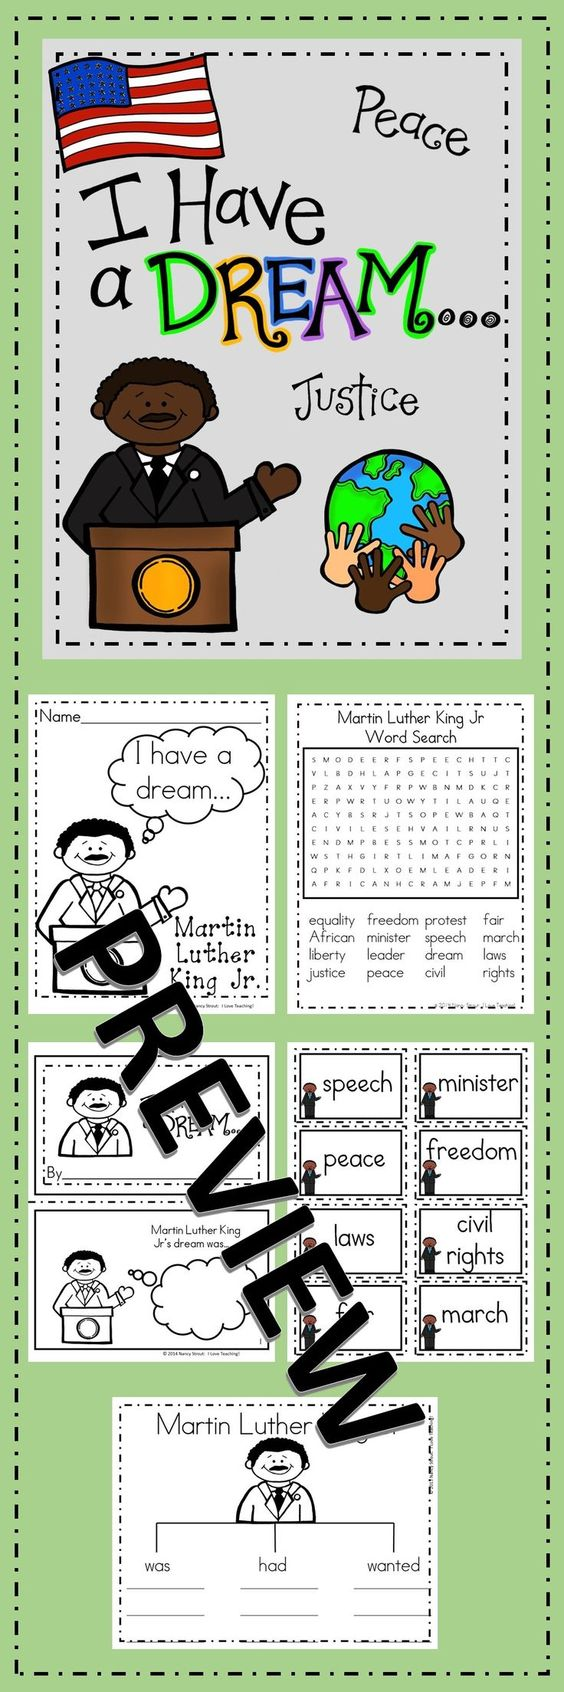 Martin Luther King Jr Printables Pages include: Martin Luther King Jr Booklet MLK Object Lesson with Printable Worksheet MLK Tree Map Vocabulary Words Vocabulary Anchor Chart Word Search with Answer Key 2 Color Sheets Martin's Dream writing activity MLK quotes: